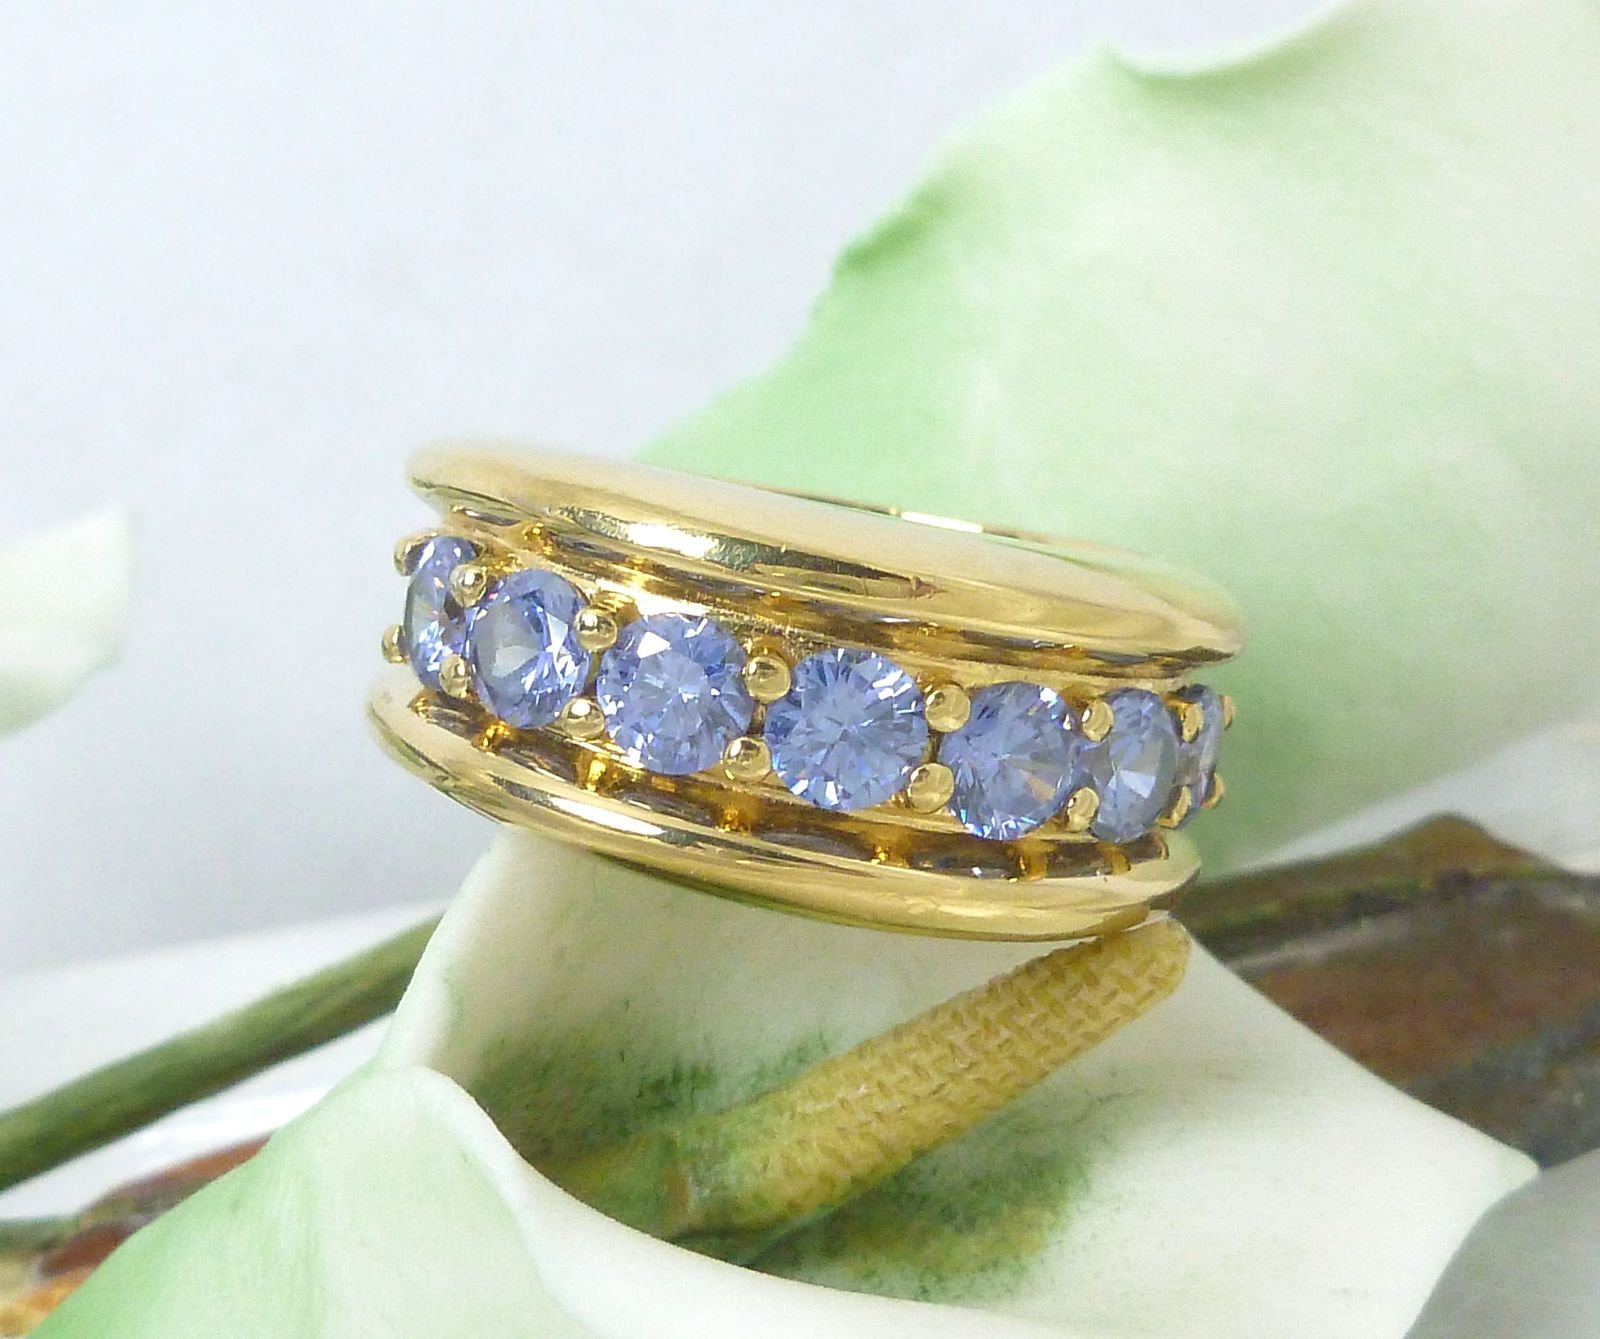 Technibond Tanzanite CZ Ring 18K Yellow Gold over Sterling Size 7